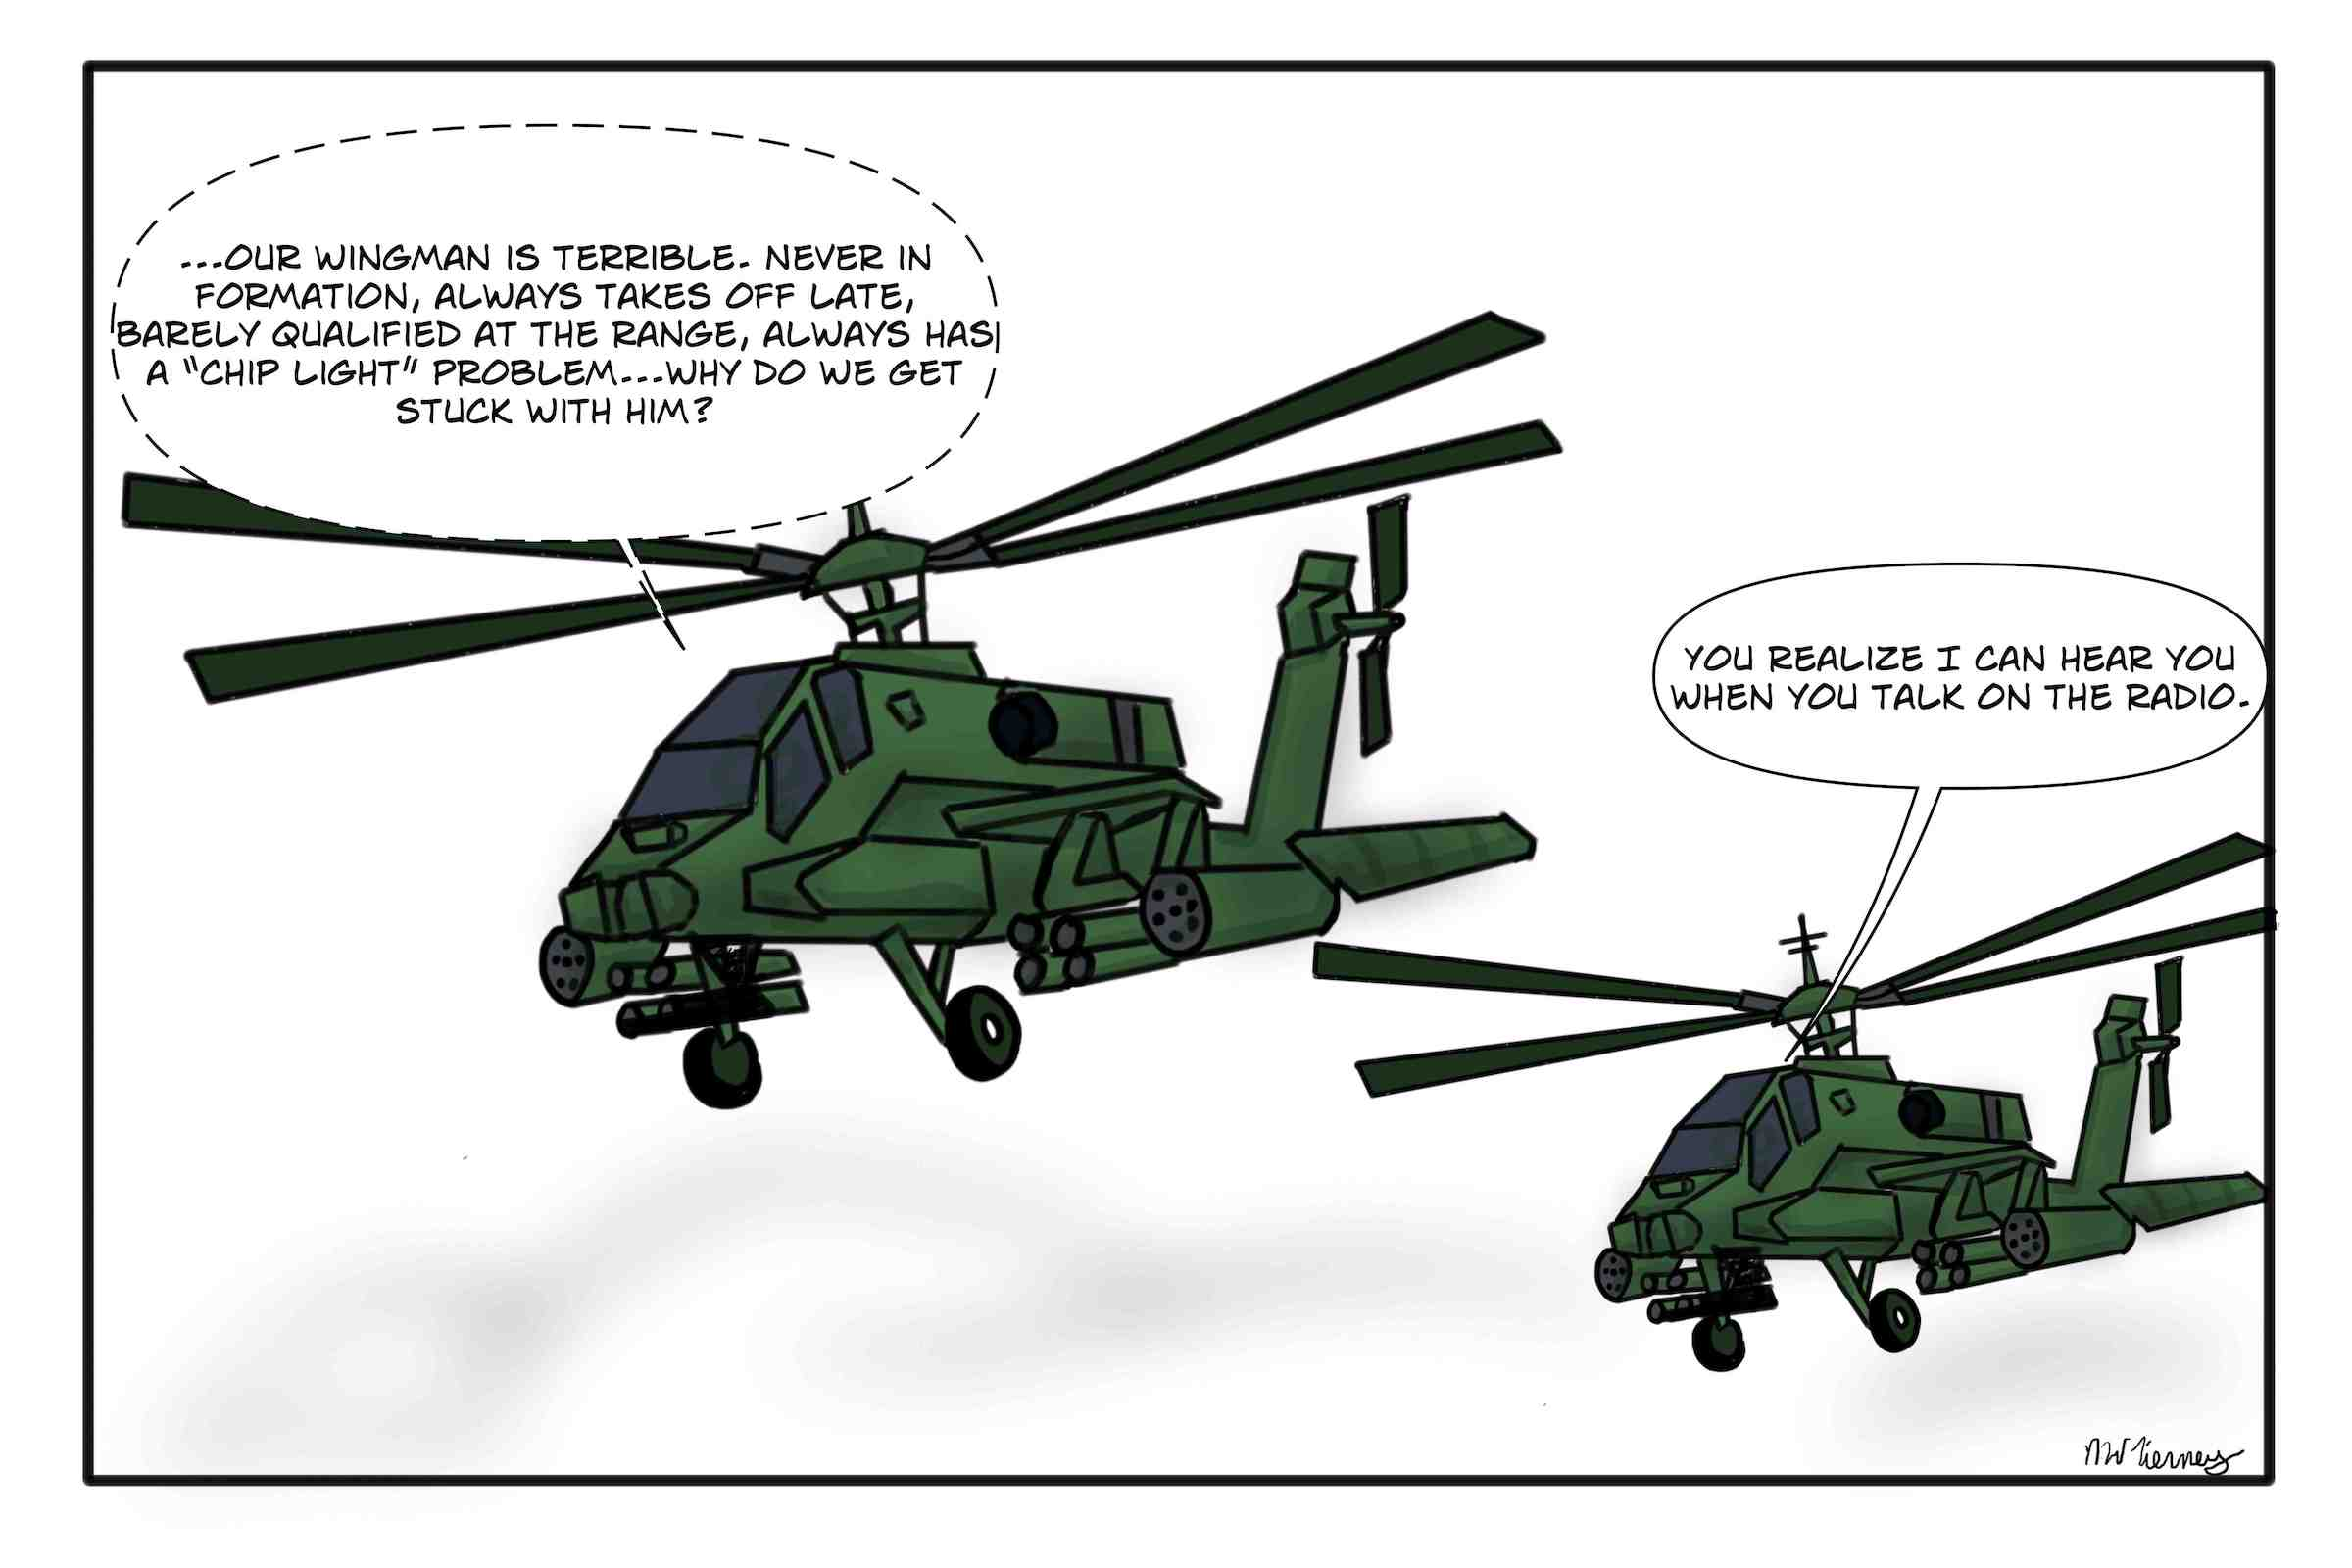 Army Apache Helicopter Pilot trash talks his wingman.